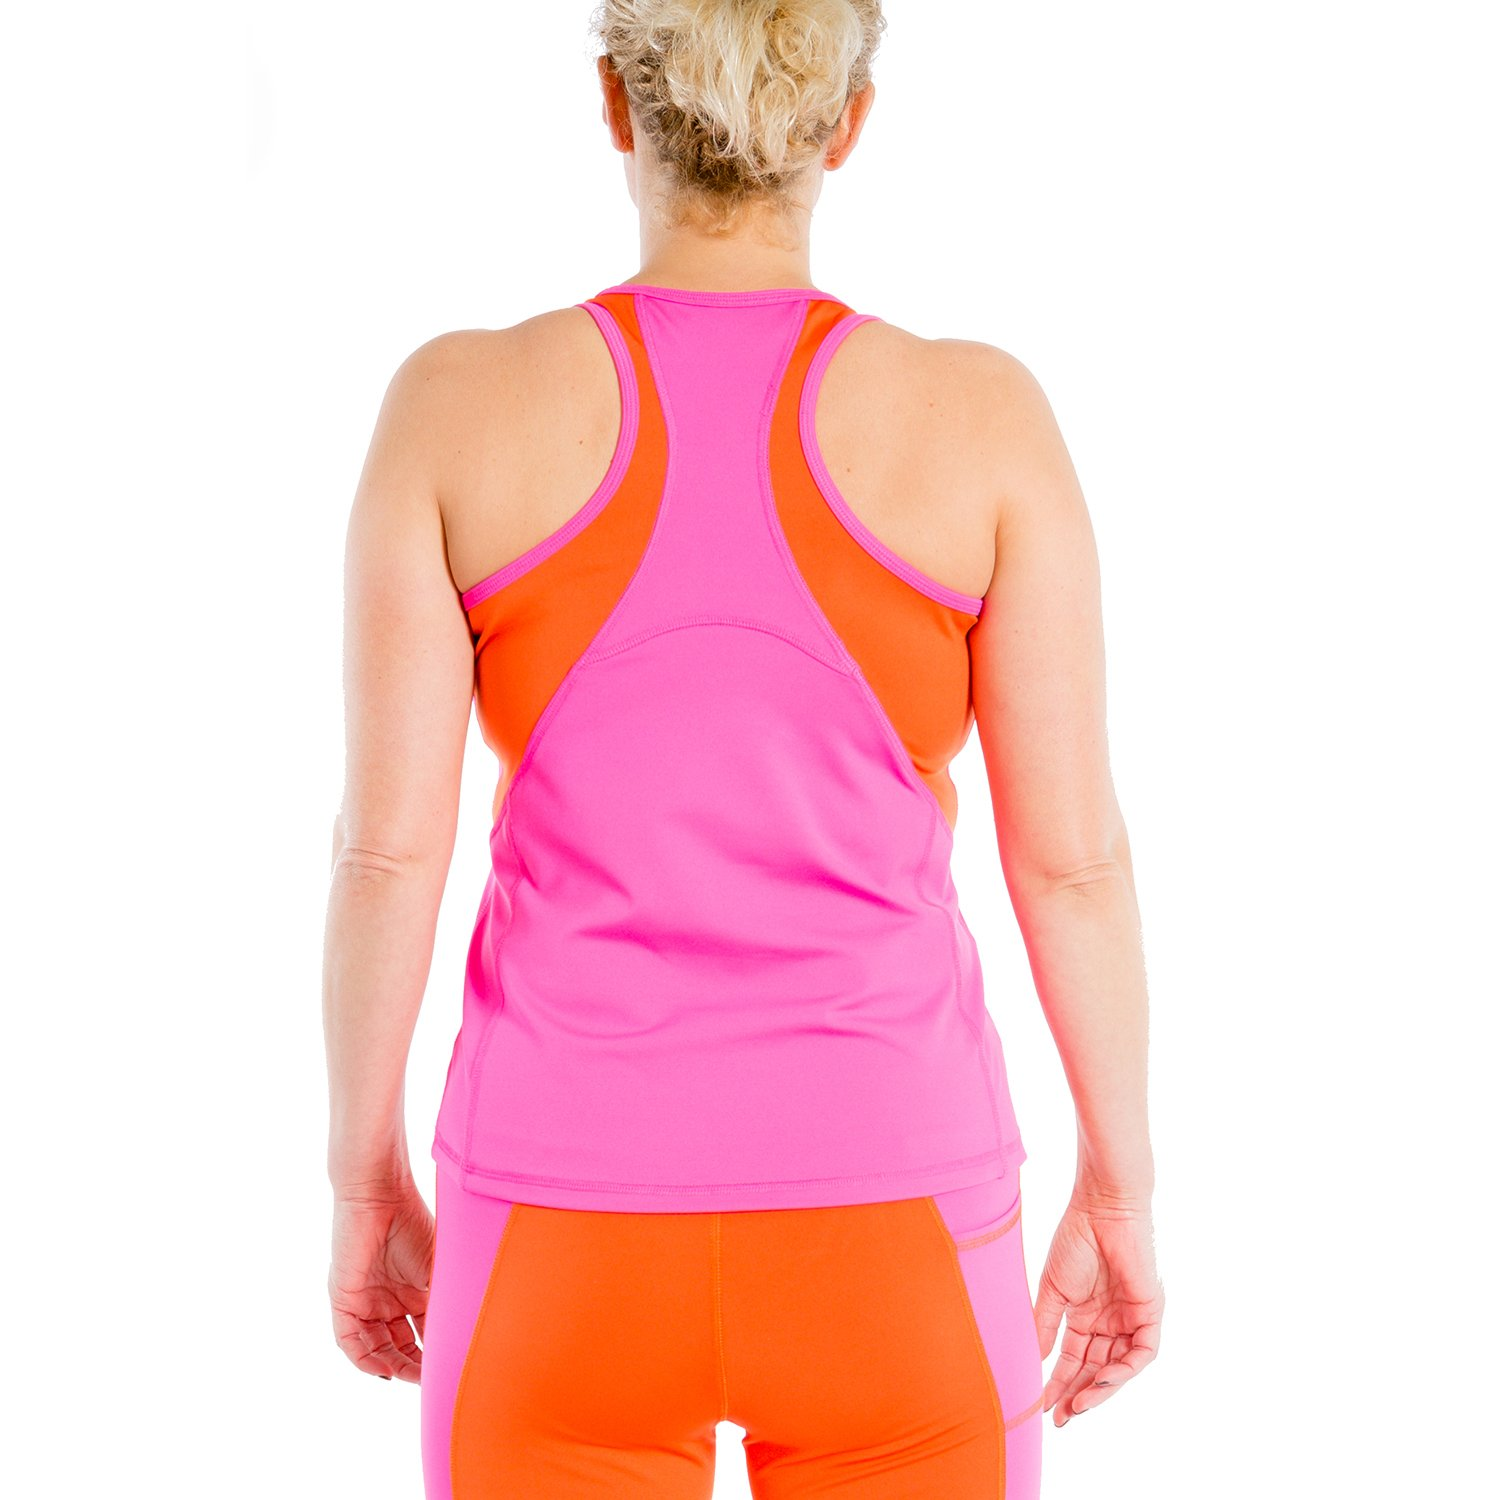 USA Made - Plus Size S - 3XL Full Figure Katie K Active Womens Racerback Tank Top Workout